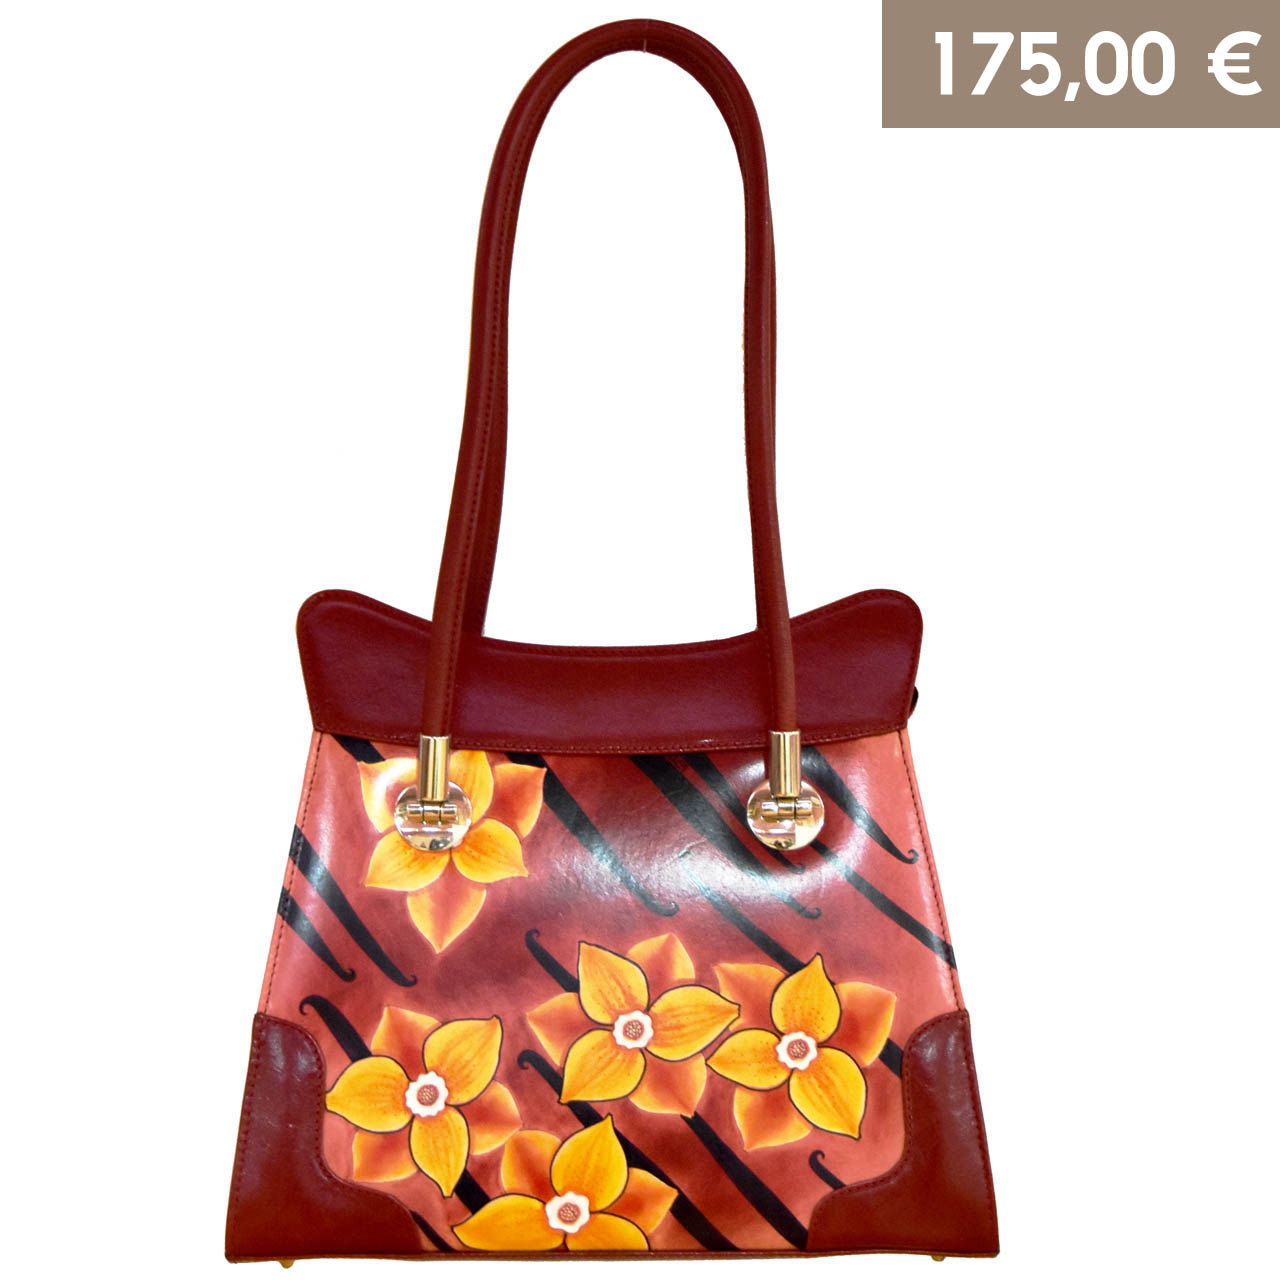 art-bag-bambas-collection-barin-events-the-yellow-narcissus-for-my-friend-with-price-sale